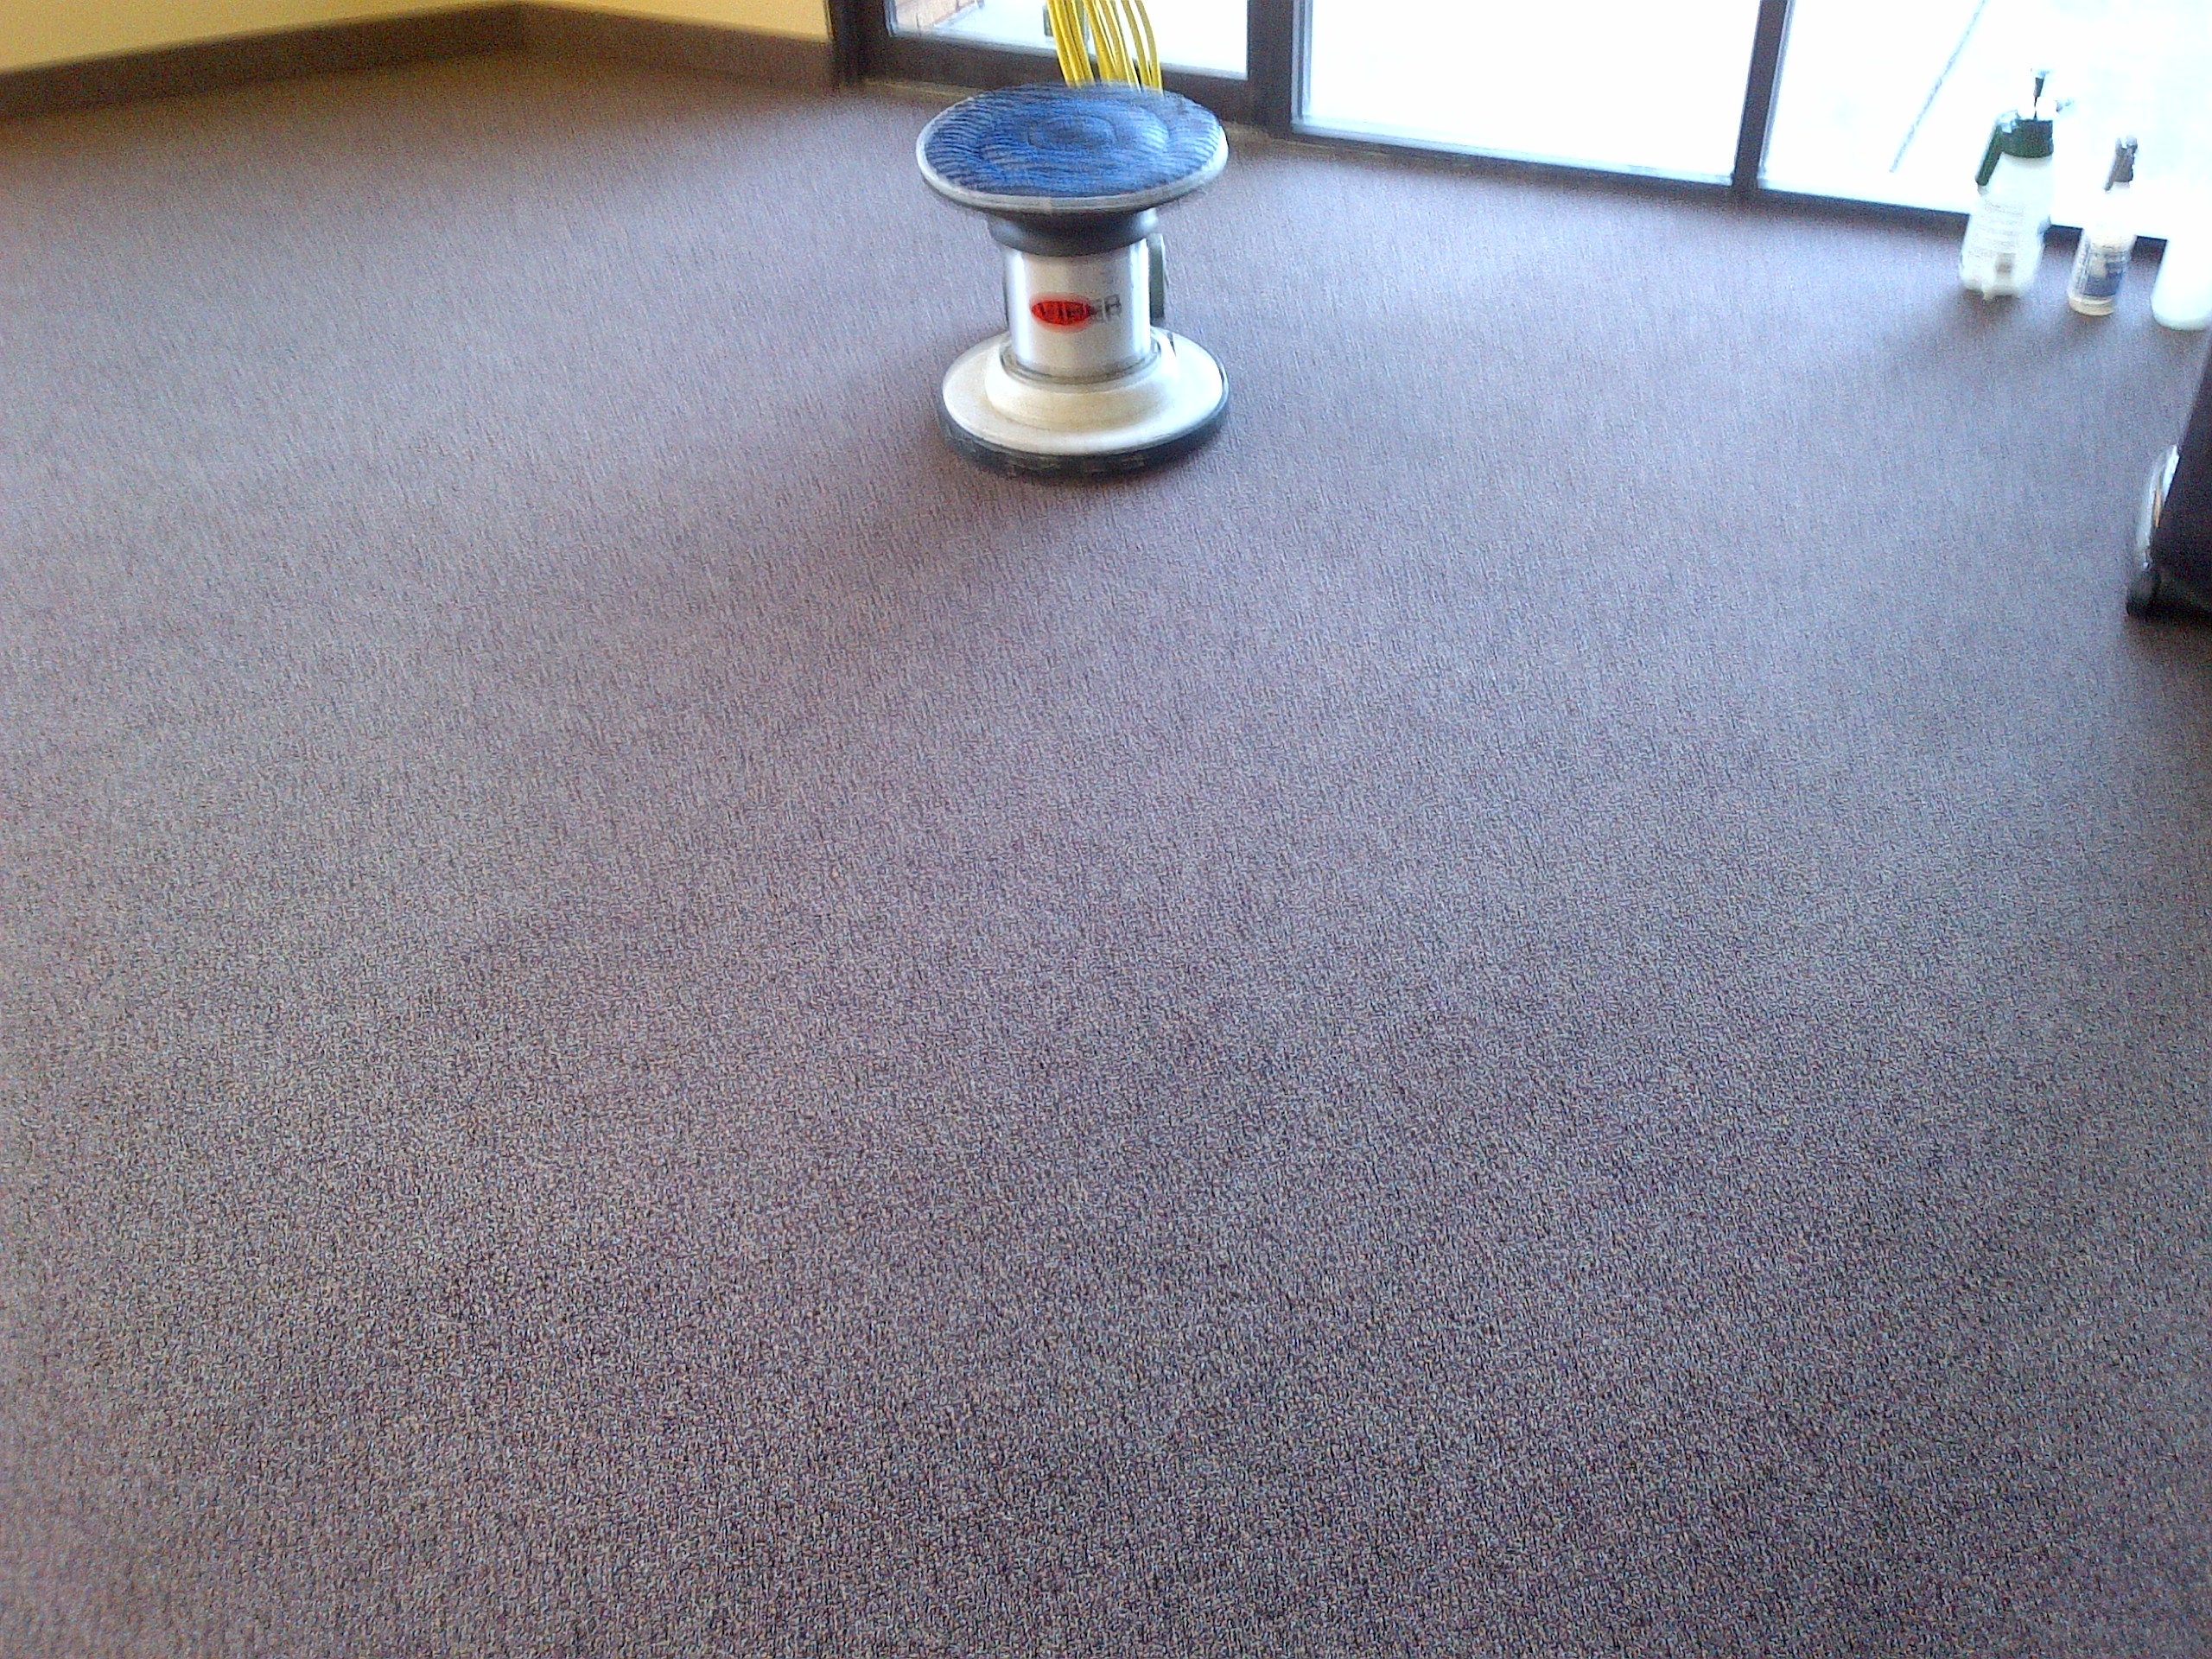 Commerical carpet Cleaning in Austin Tx